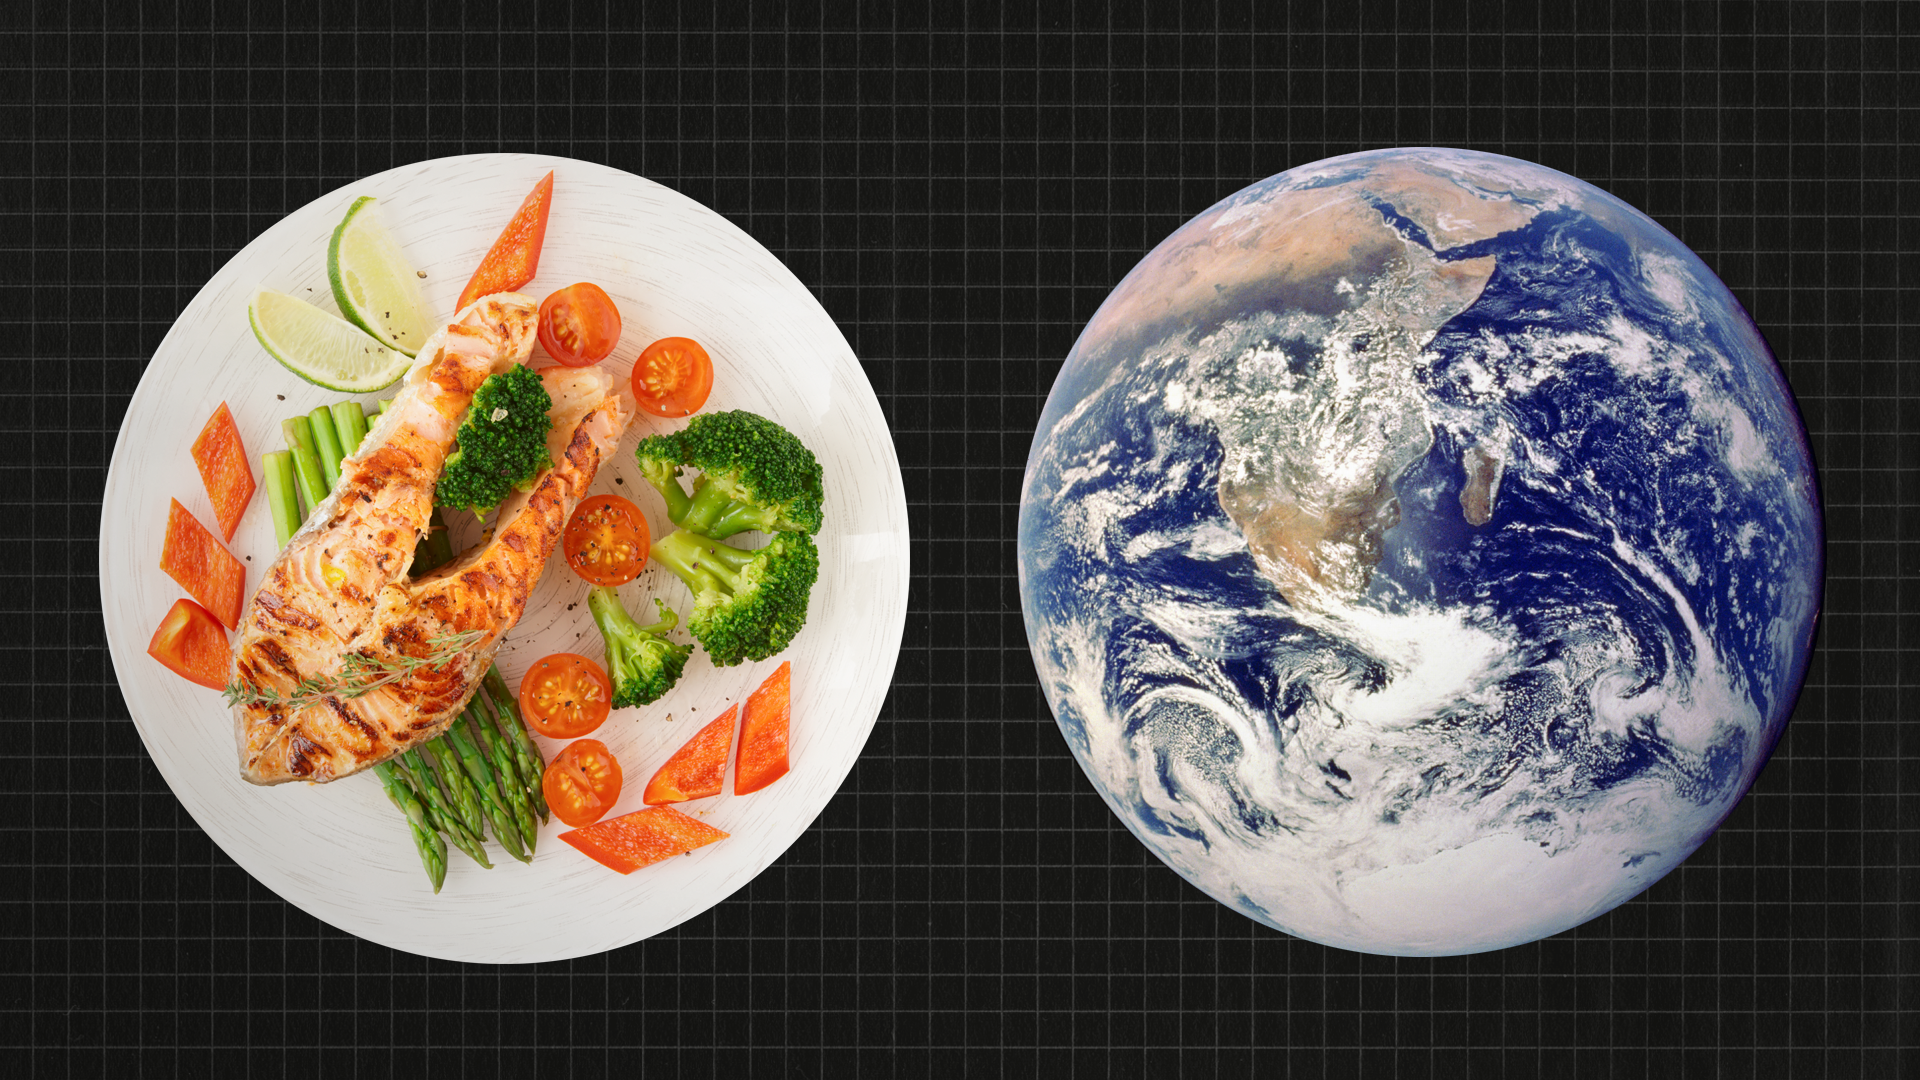 The diet that helps fight climate change - Vox